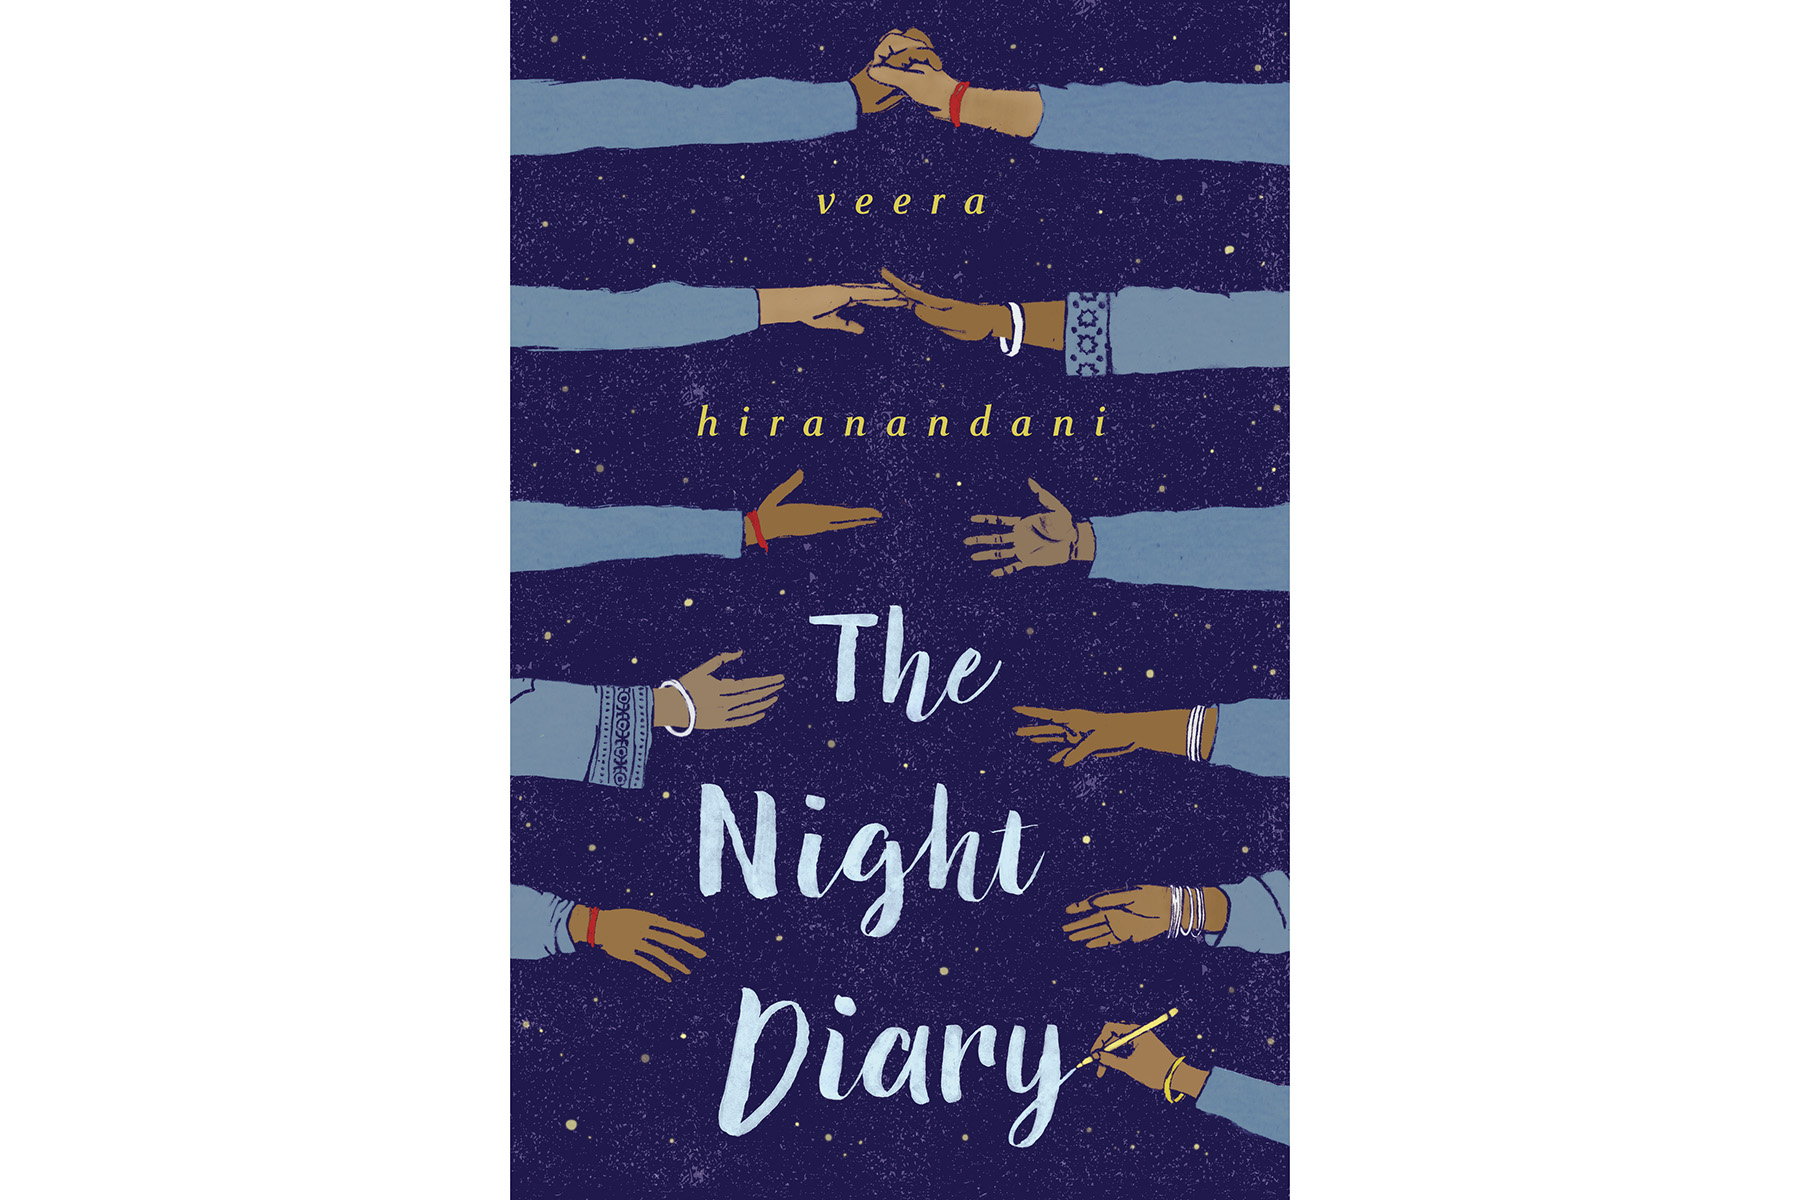 The Night Diary, by Veera Hiranandani book cover